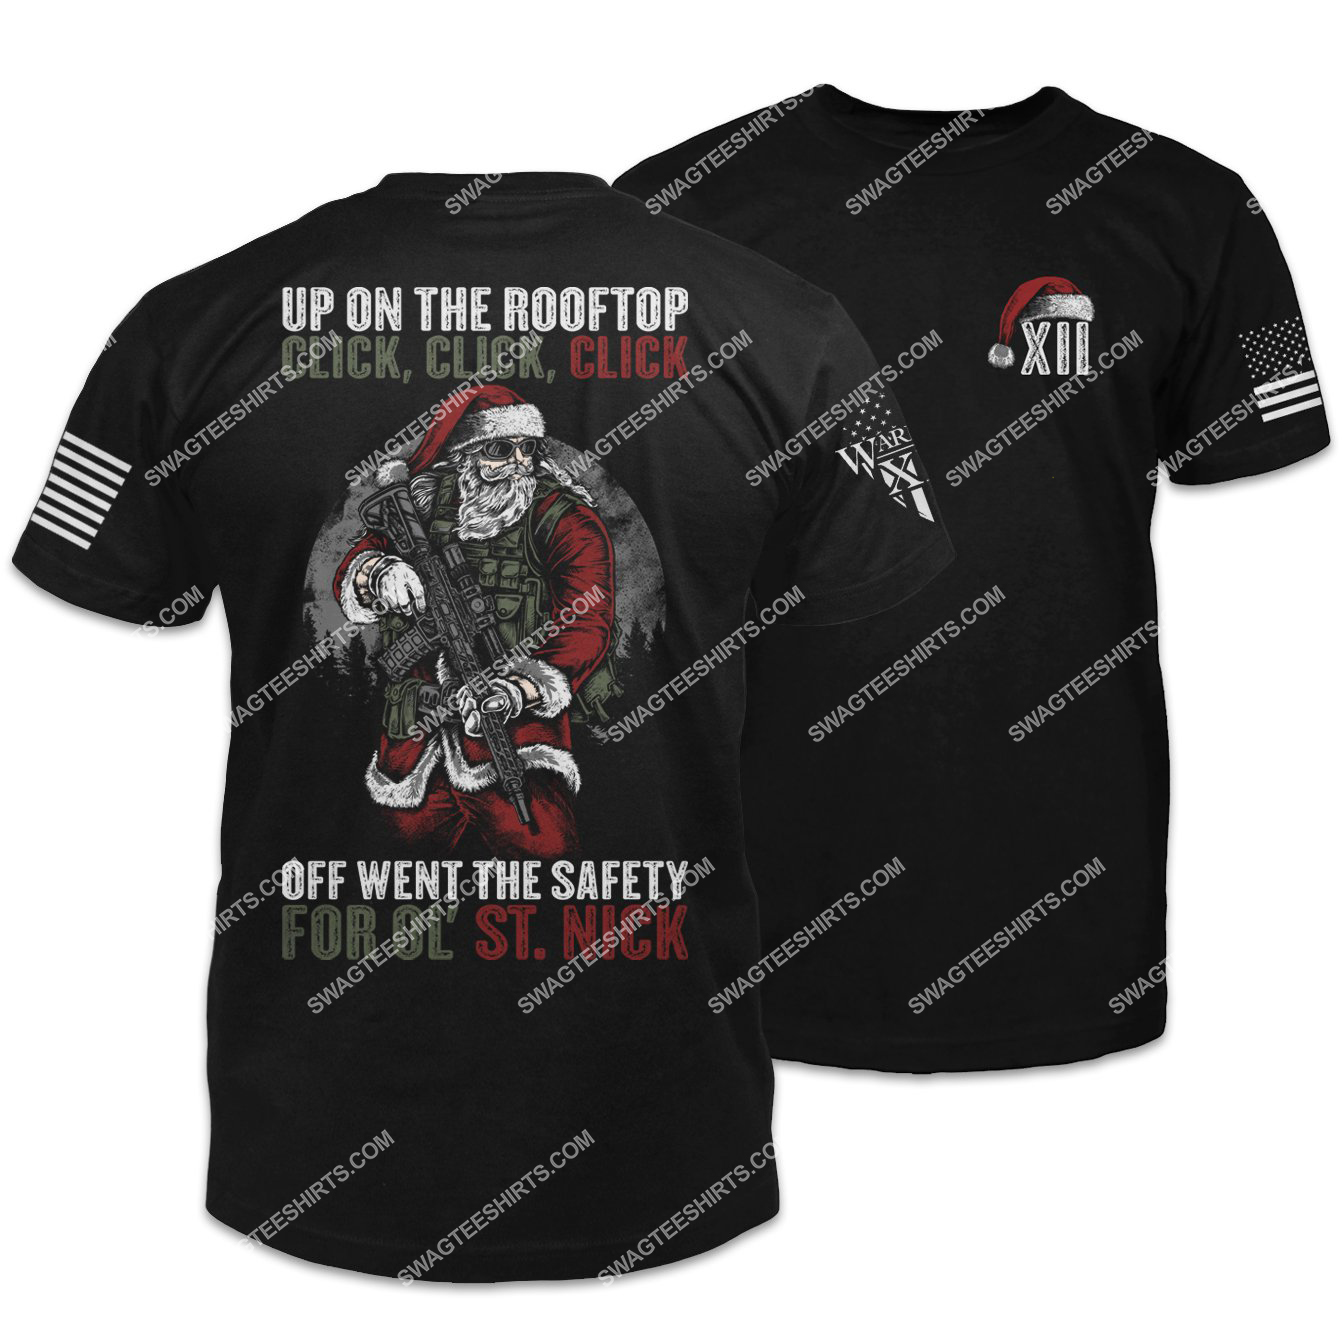 up on the rooftop off went the safety for ol' st nick santa on patrol shirt 1 - Copy